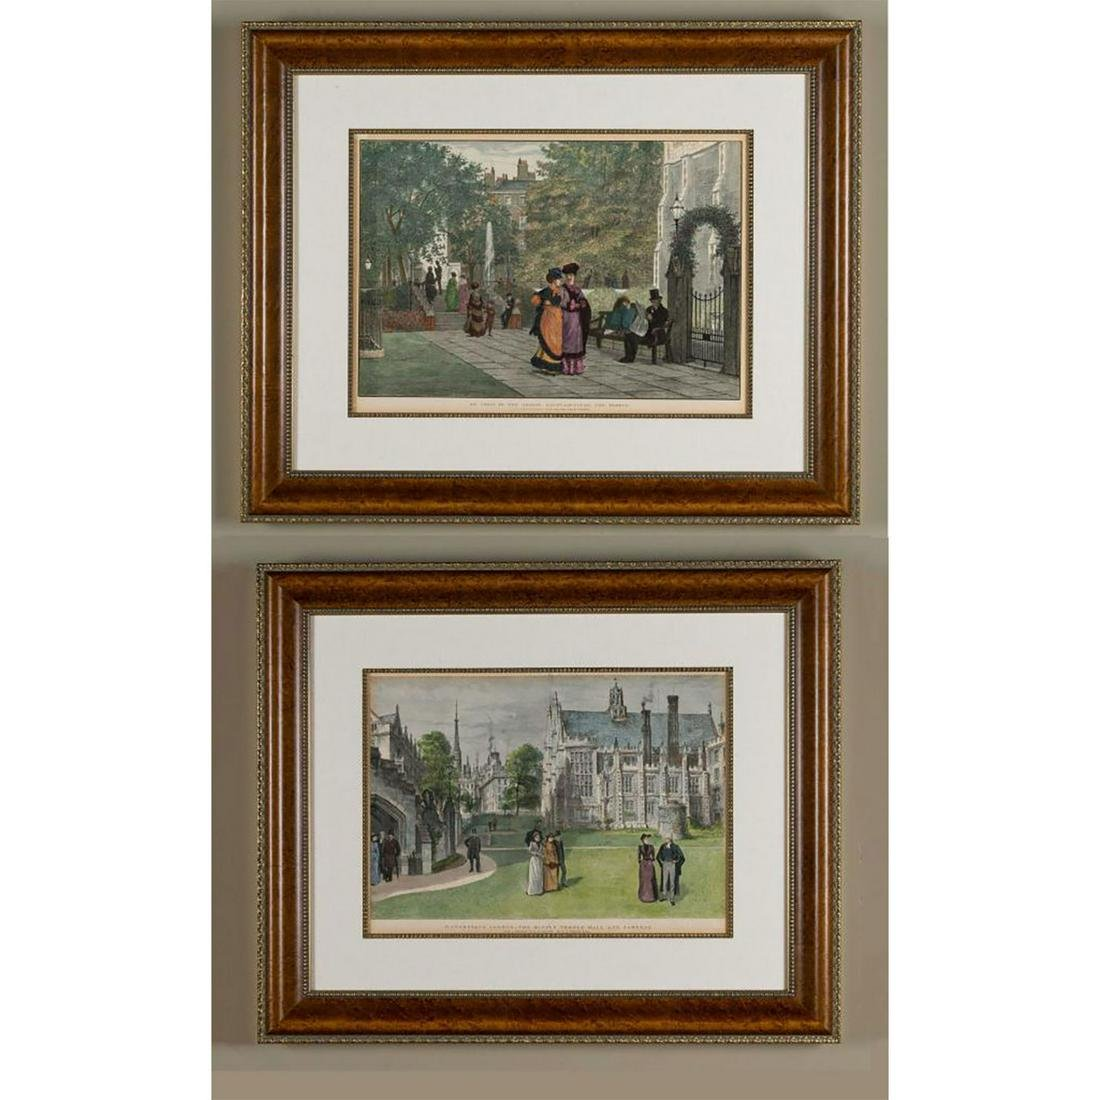 2 VICTORIAN ENGRAVED PRINTS, THE MIDDLE TEMPLE LONDON